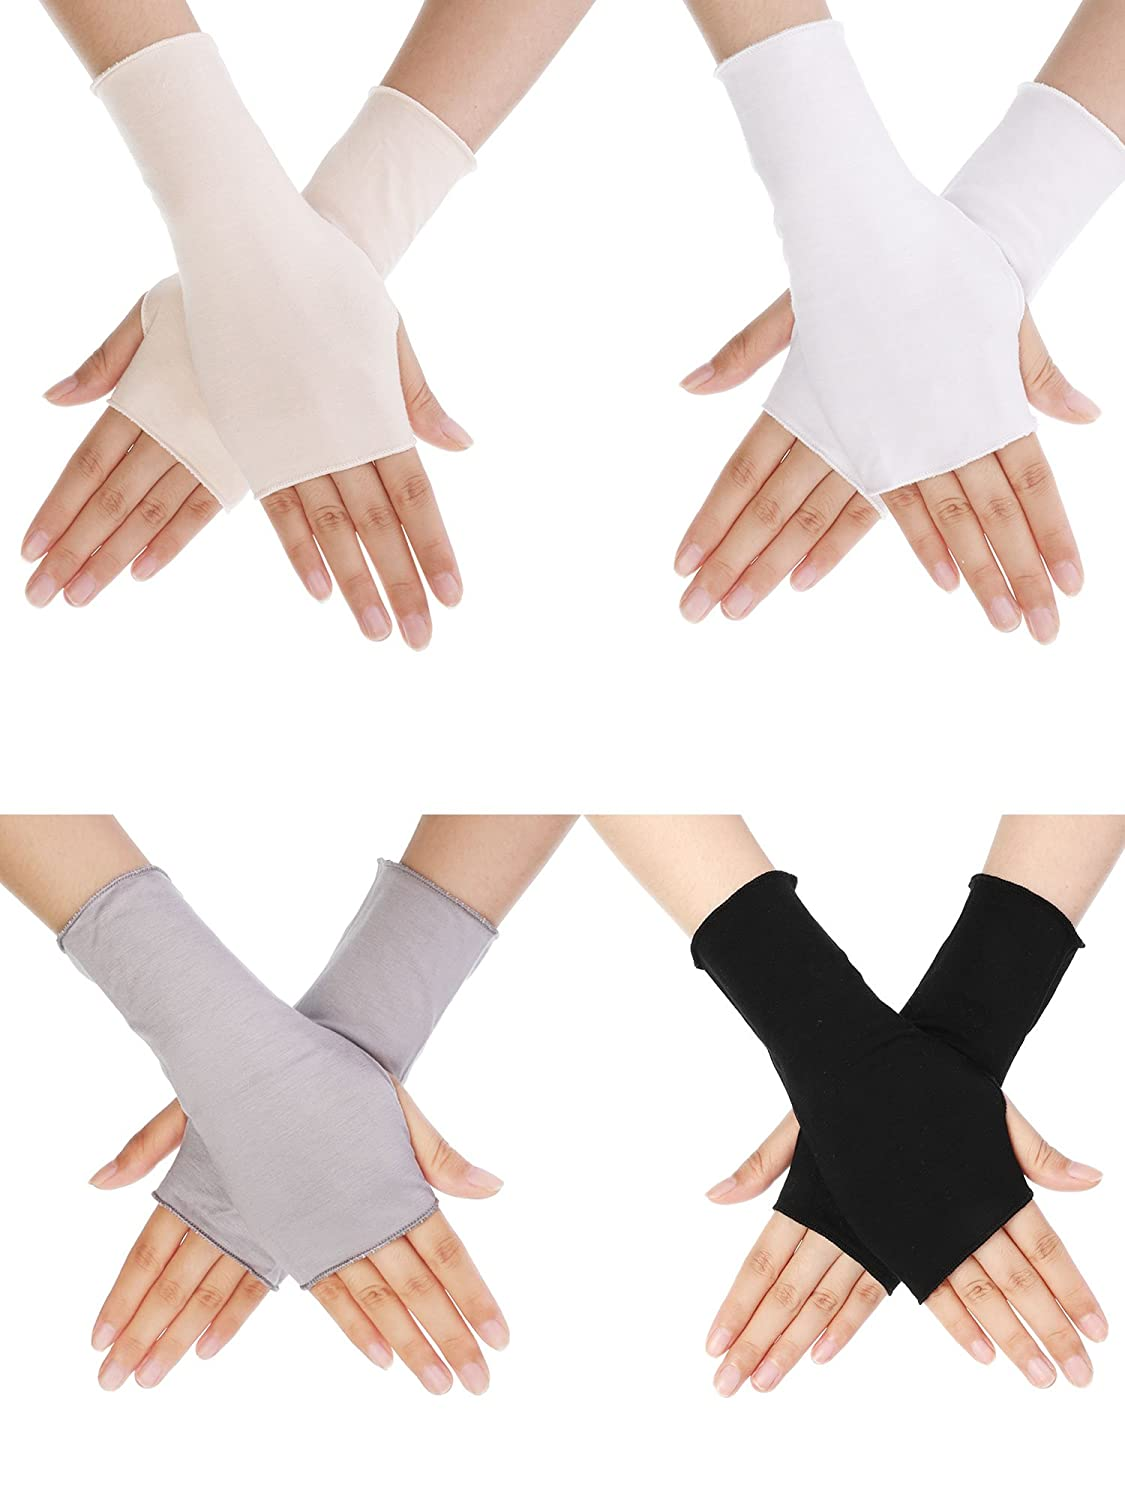 4 Pairs UV Protection Gloves Wrist Length Sun Block Driving Gloves Unisex Fingerless Glove, 4 Colors